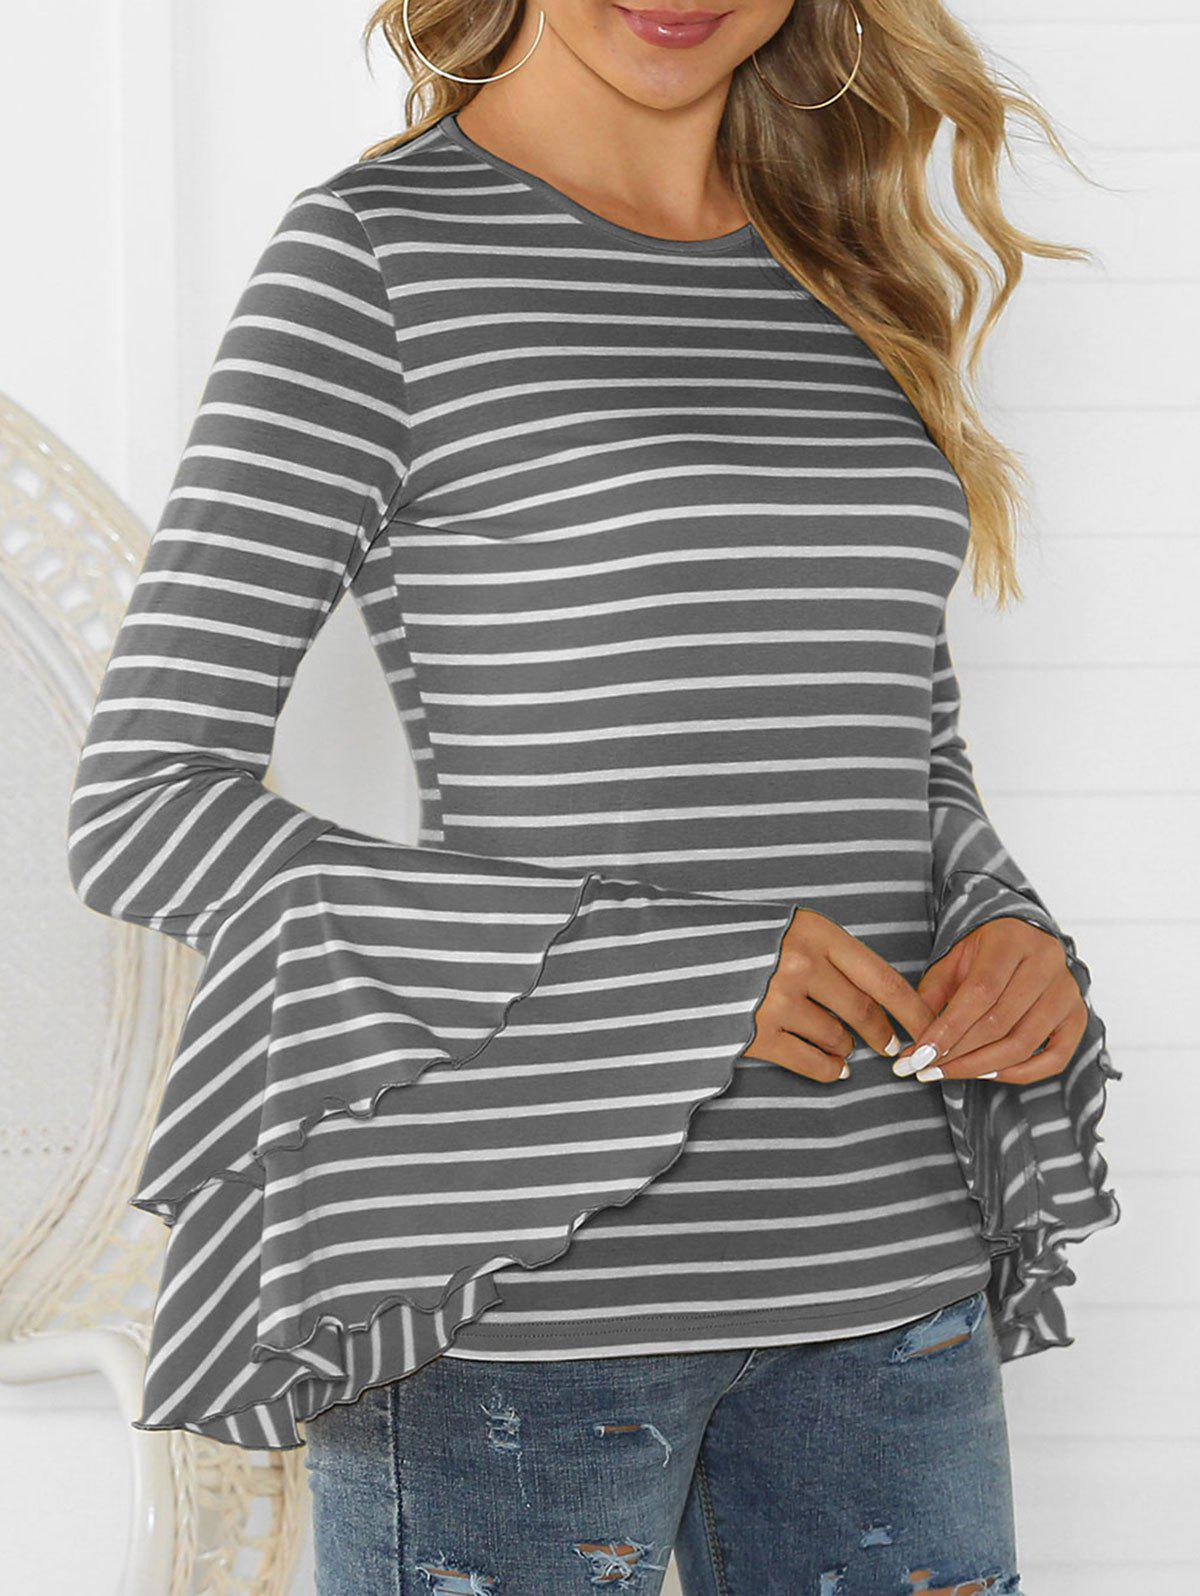 Striped Layered Flare Sleeve Tee - GRAY M